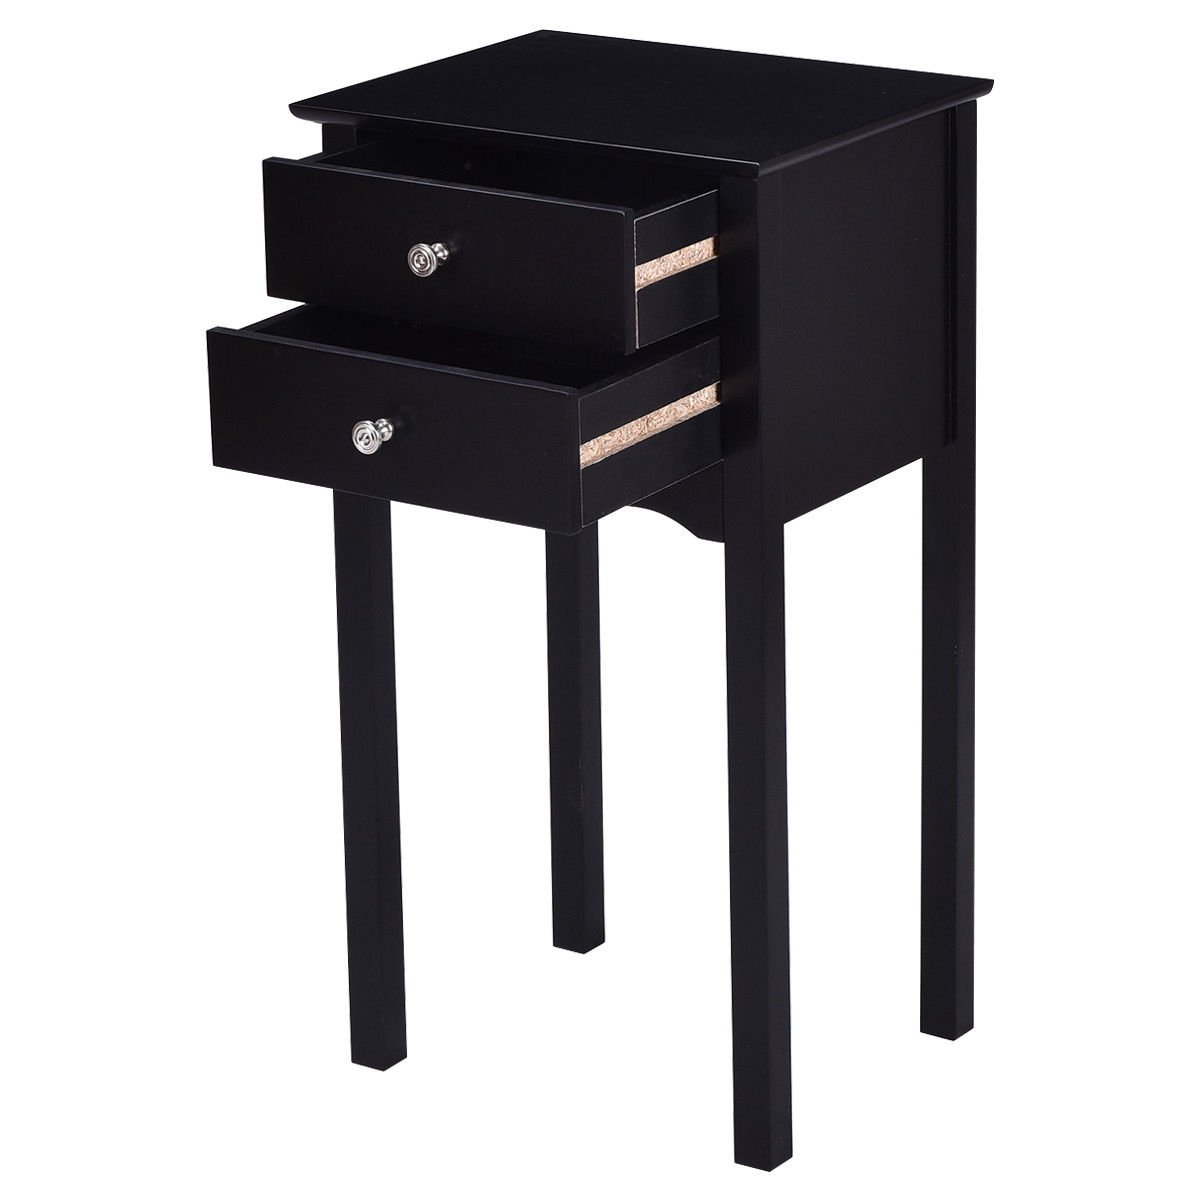 gymax side table end accent night stand drawers furniture black with drawer free shipping today round narrow cabinet cooler white marble bedside globe lamp tablecloth for oval